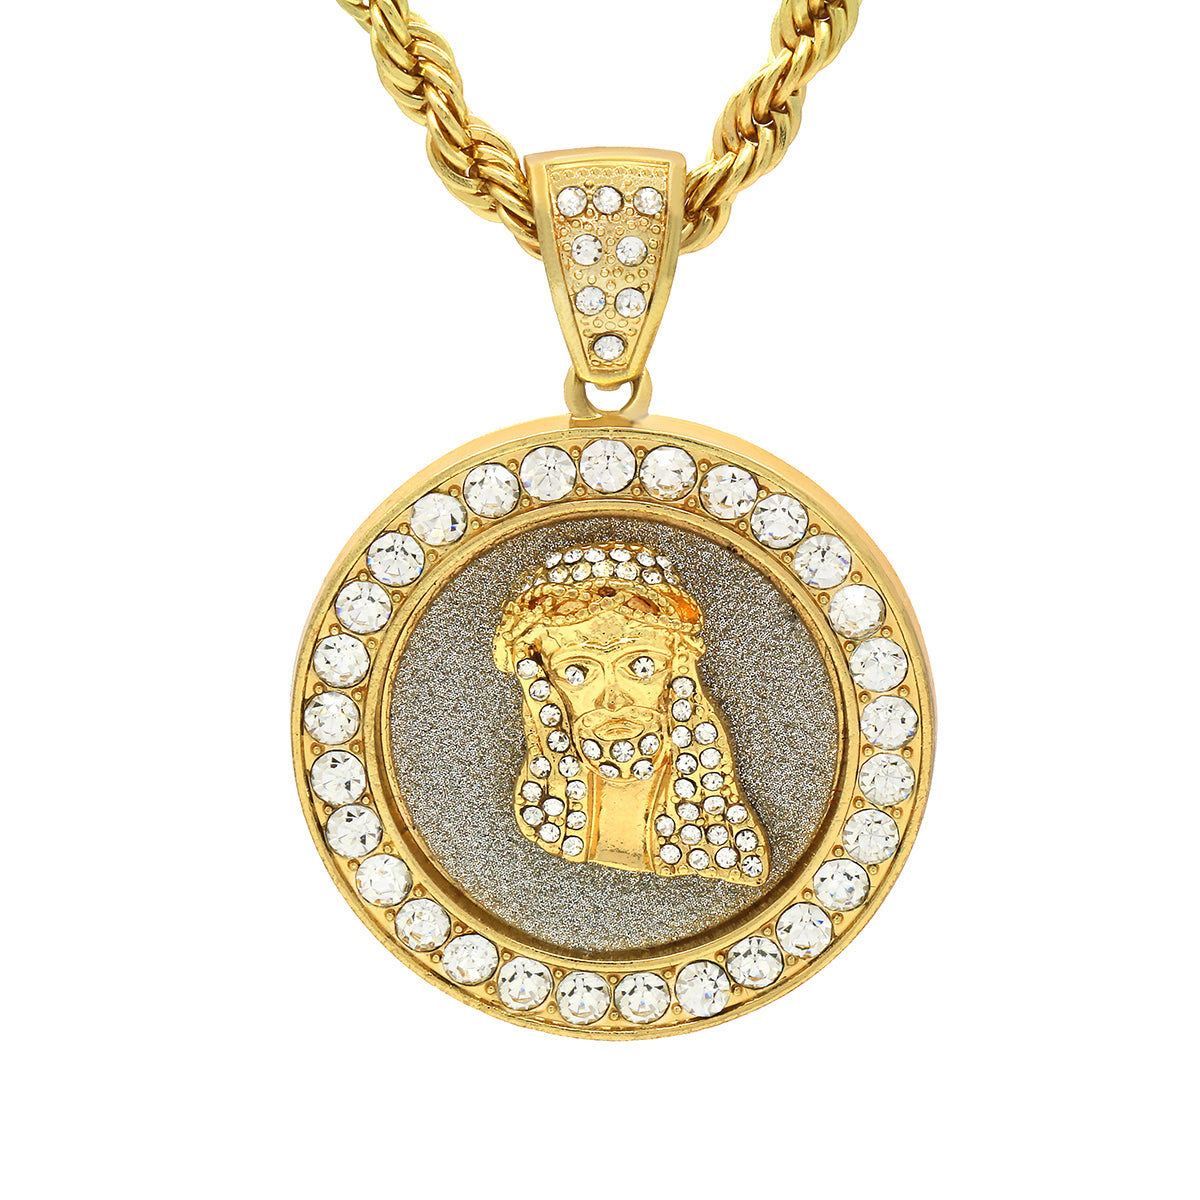 14k Gold Filled Fully Ice Out Jesus In the middle Pendant  with Rope Chain